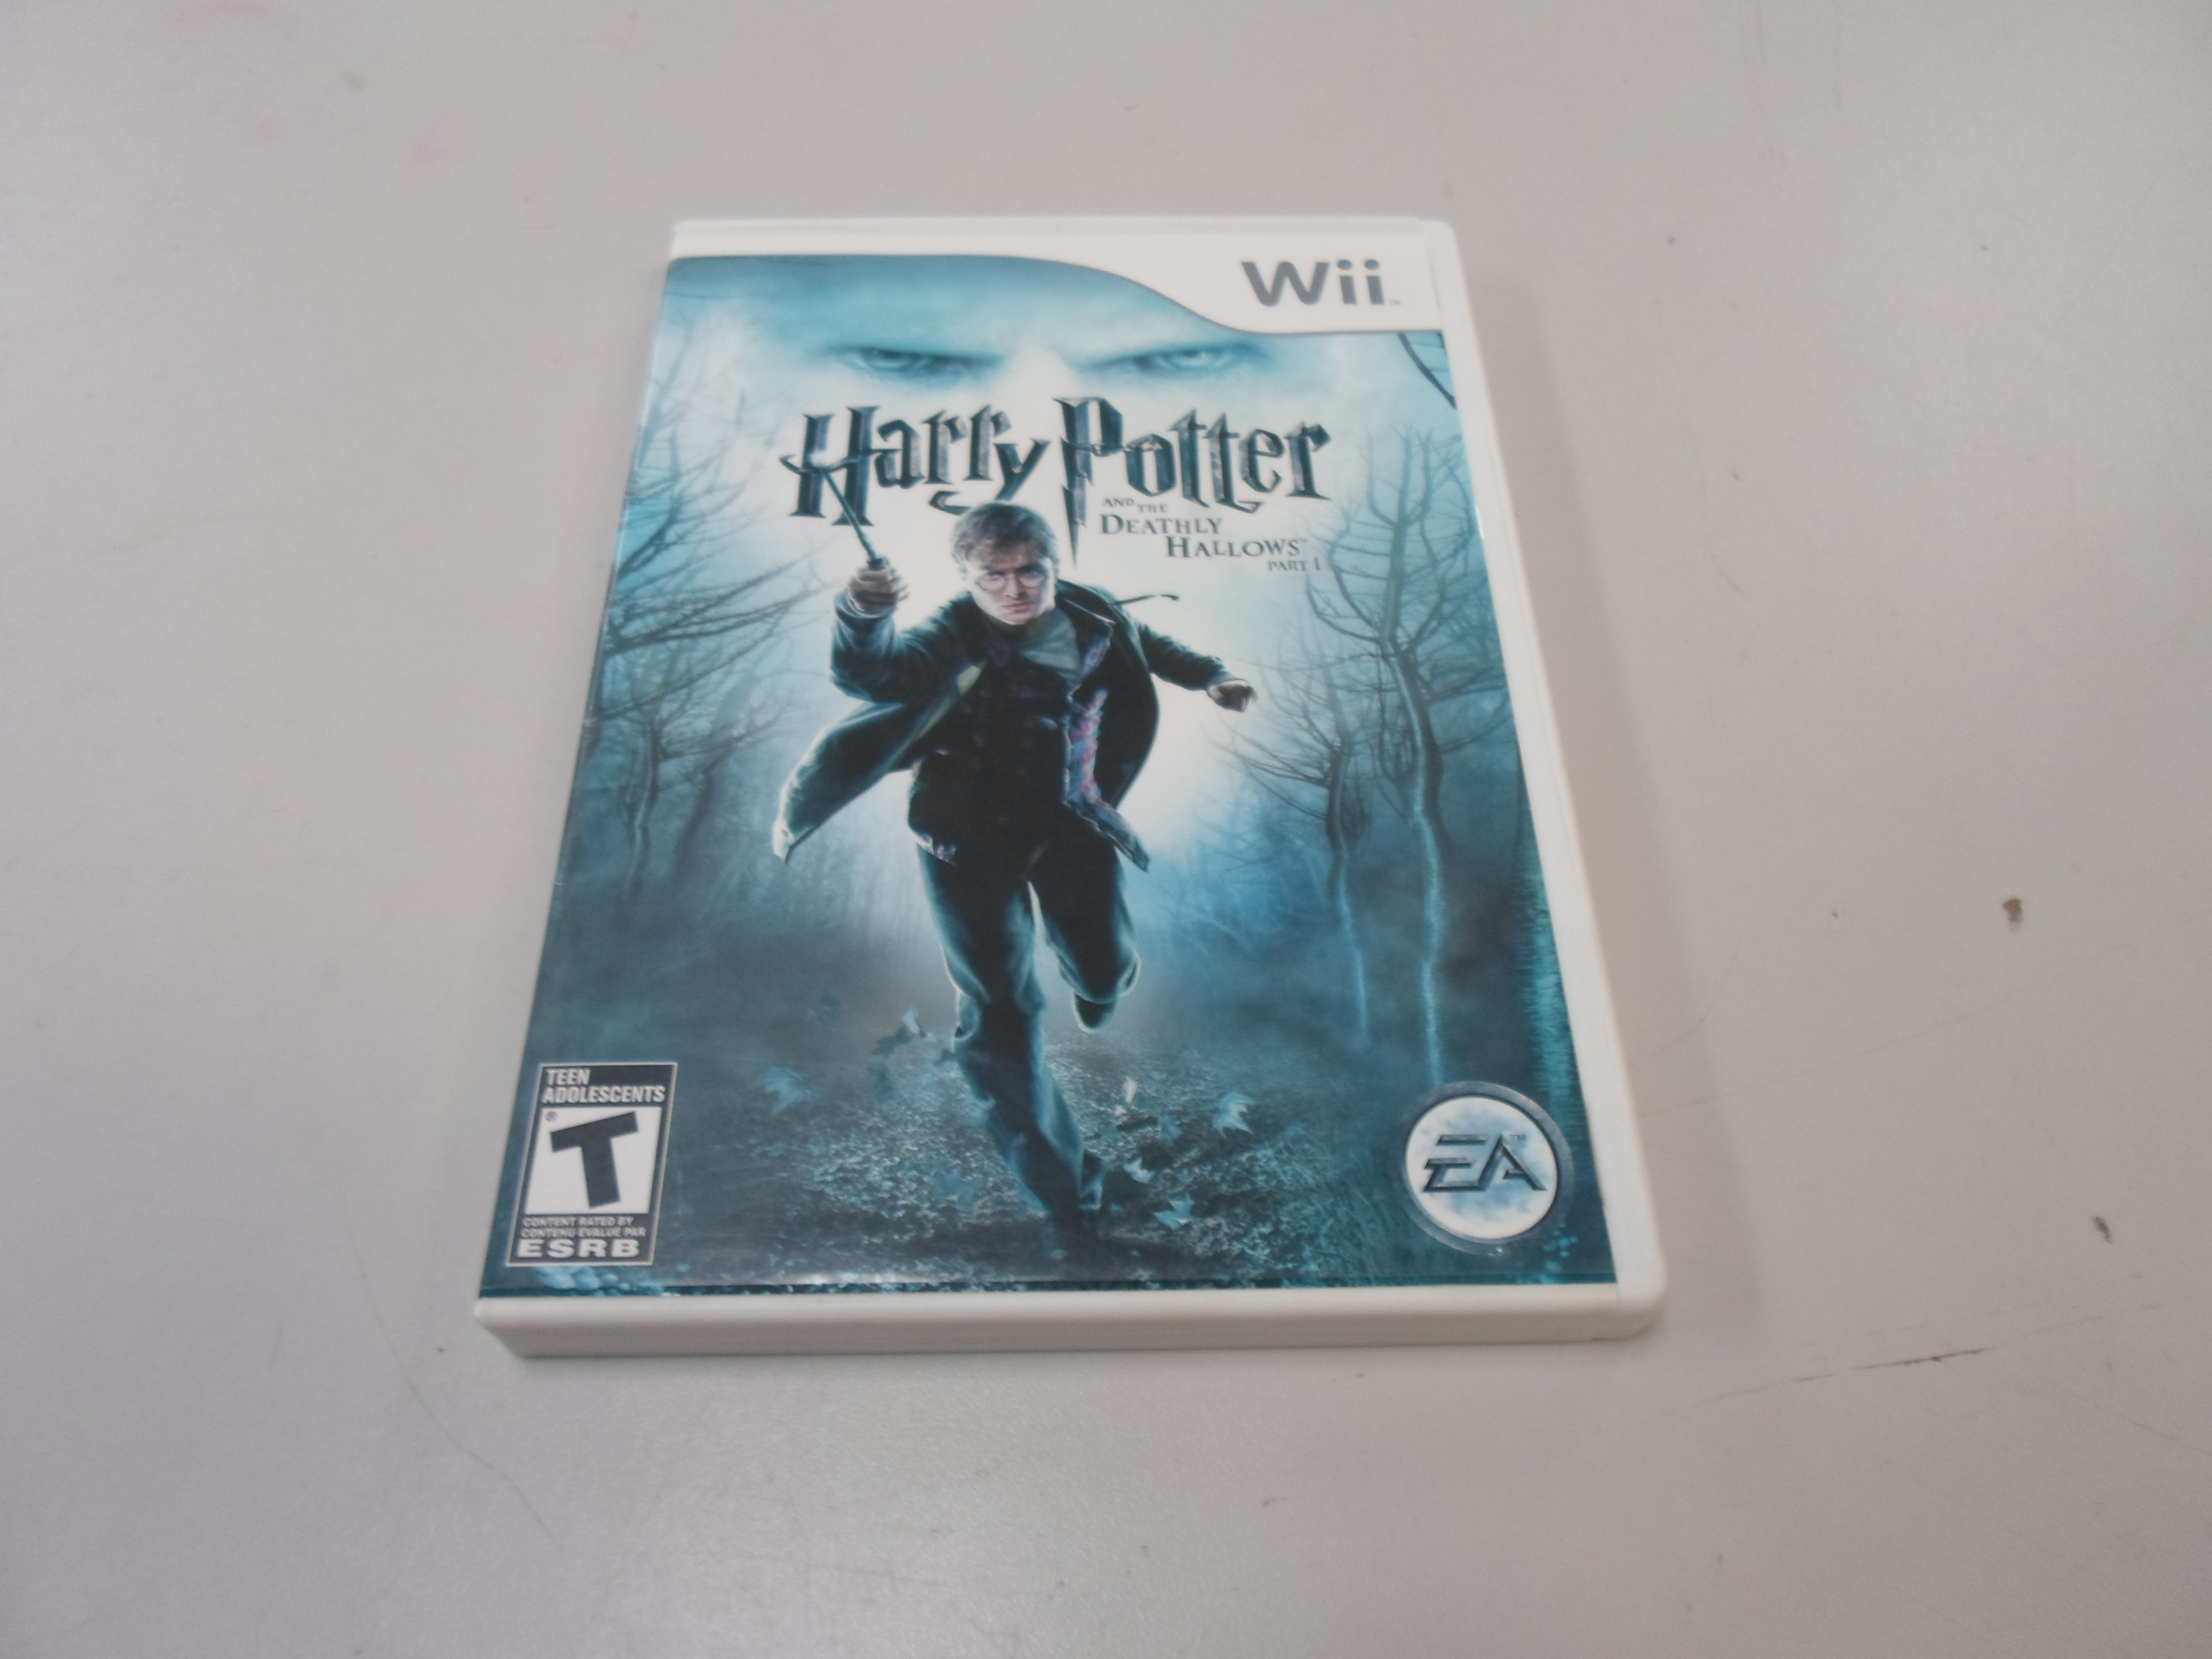 WII  HARRY POTTER AND THE DEATHLY HALLOWS PT.1 WII